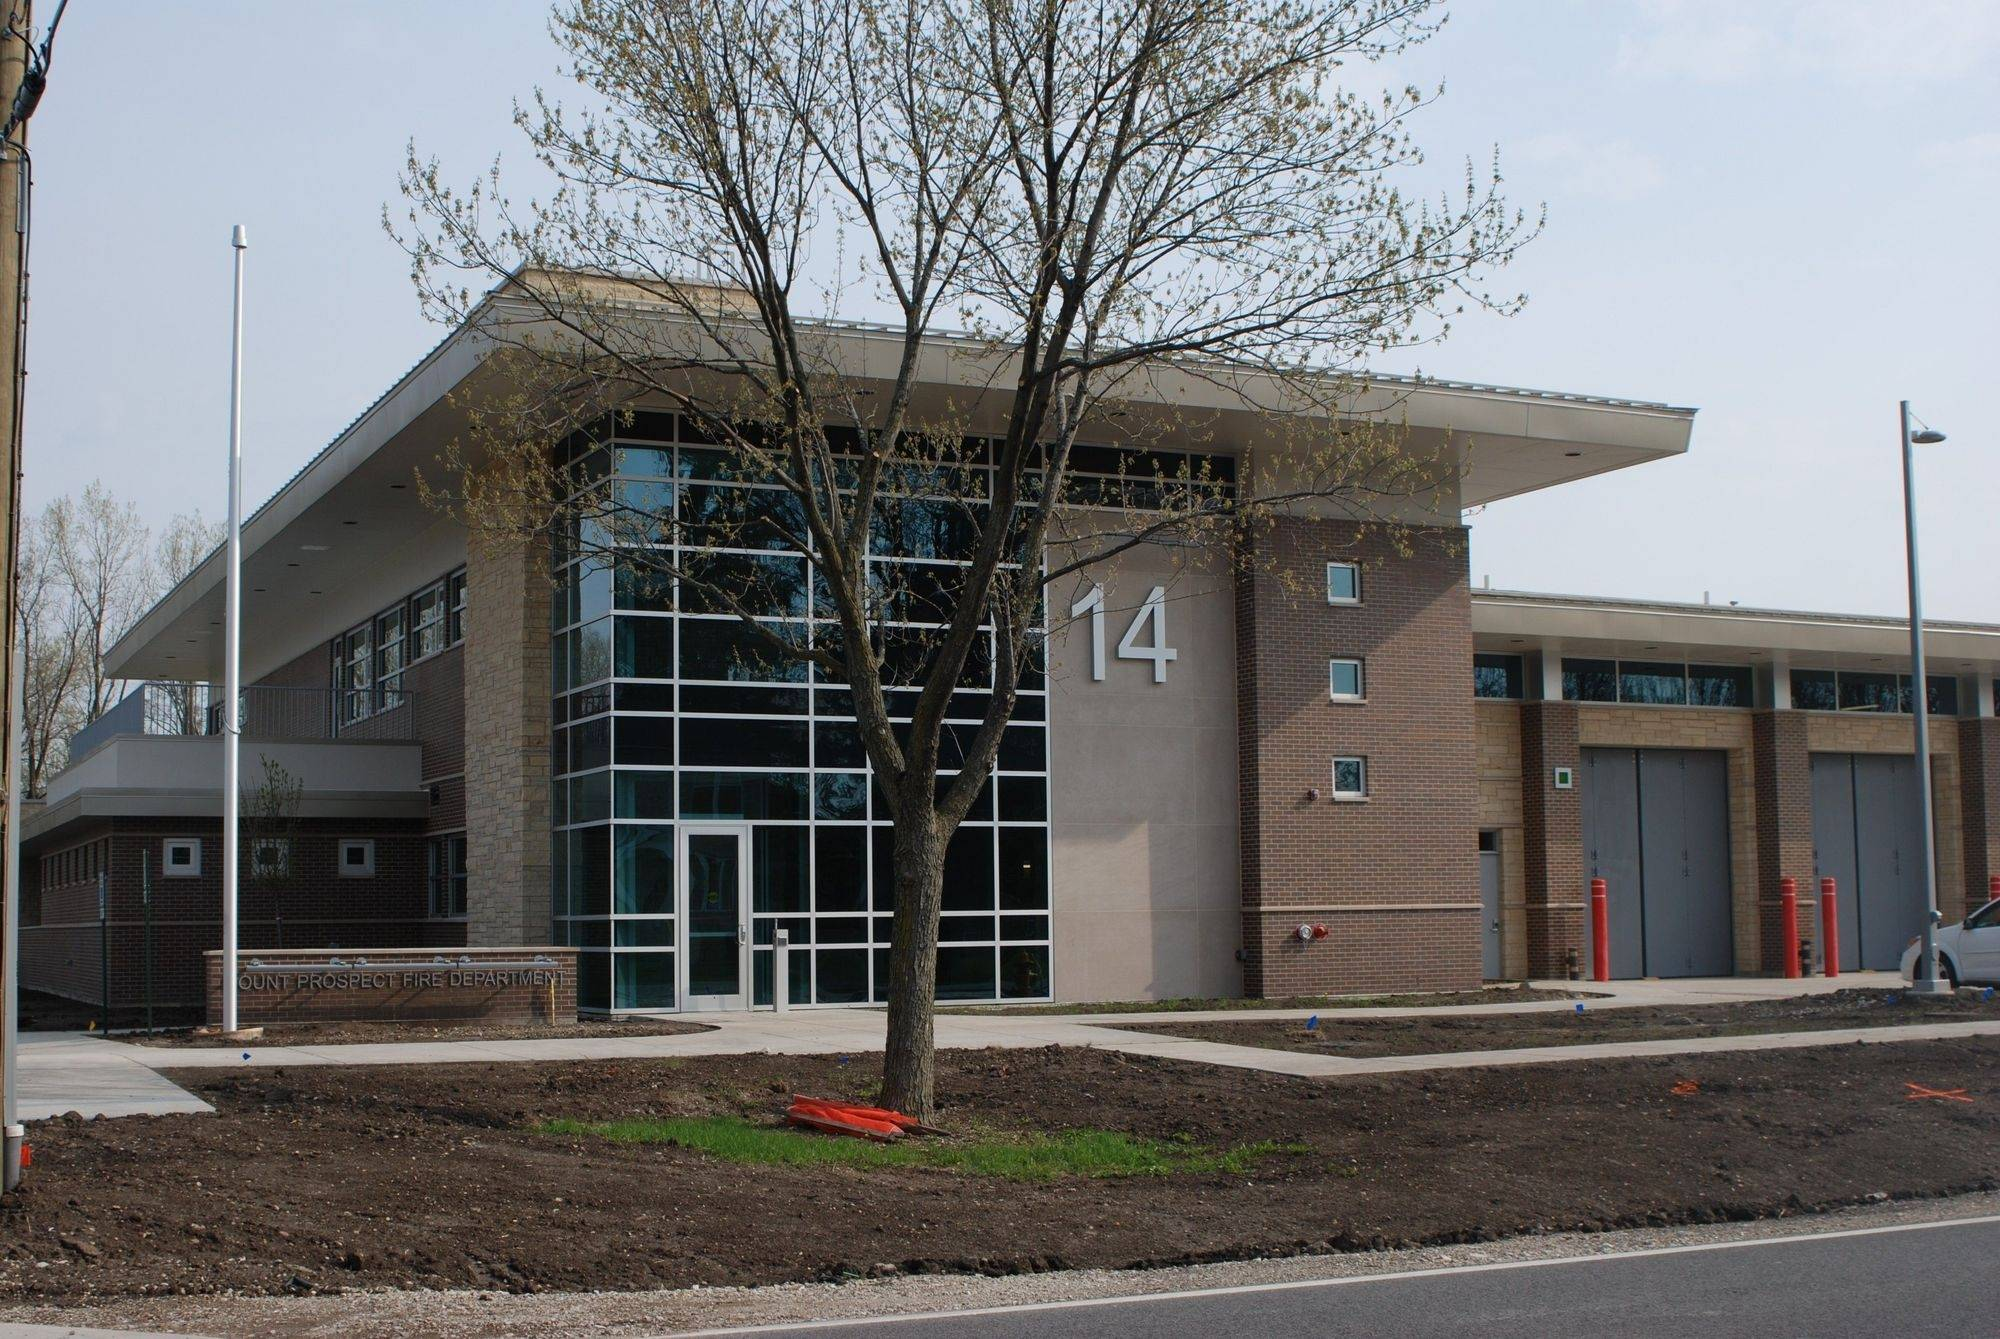 This is the new Fire Station 14, which opened recently in Mount Prospect.